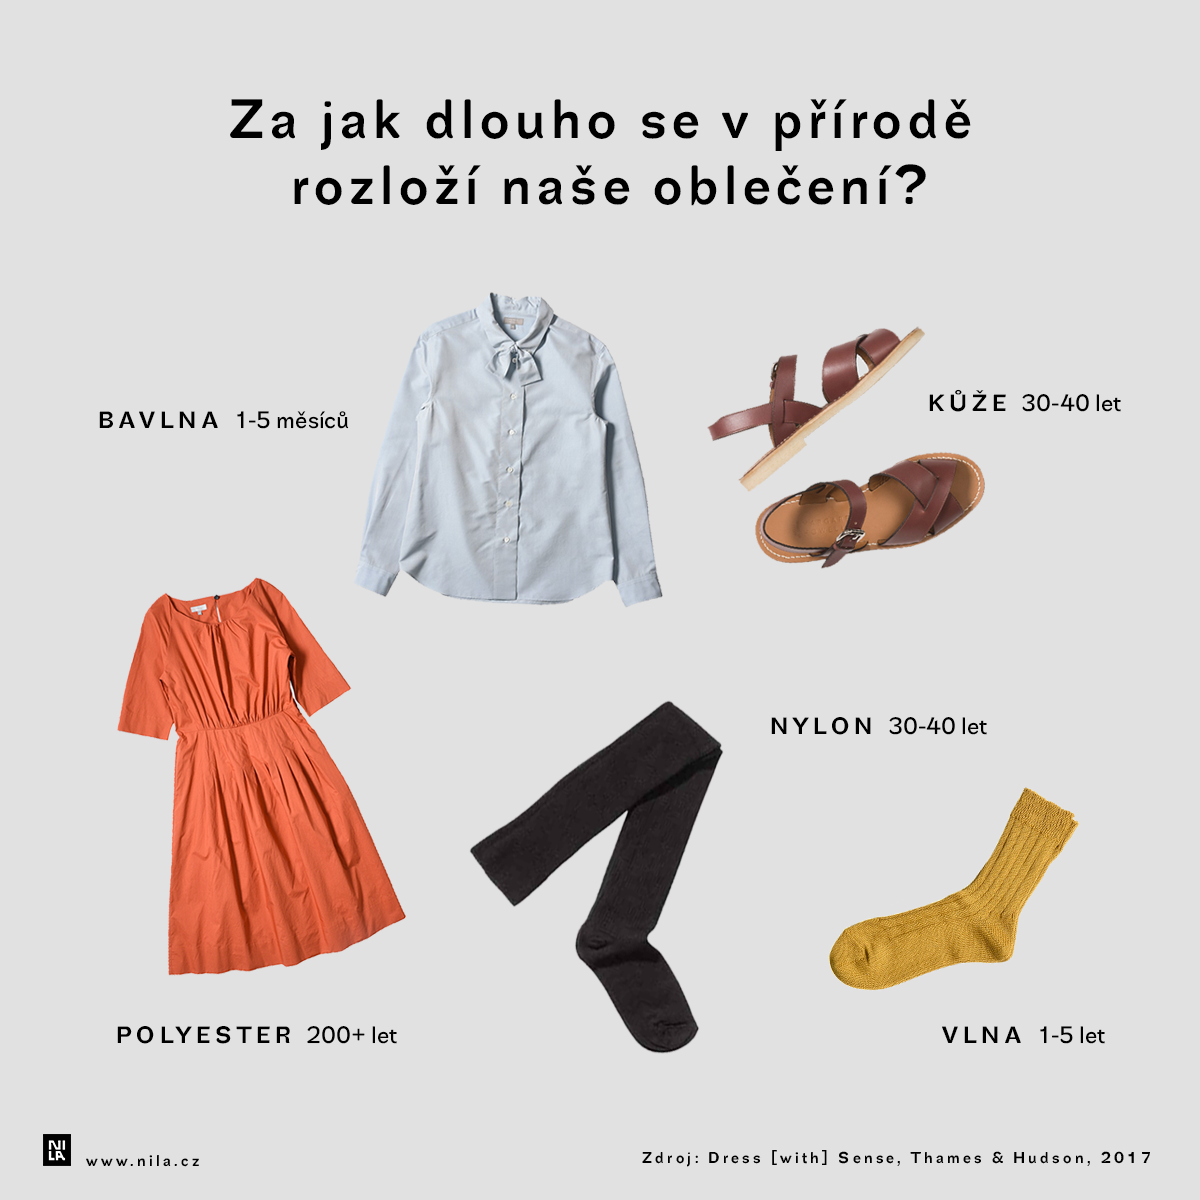 infografika_materialy.png